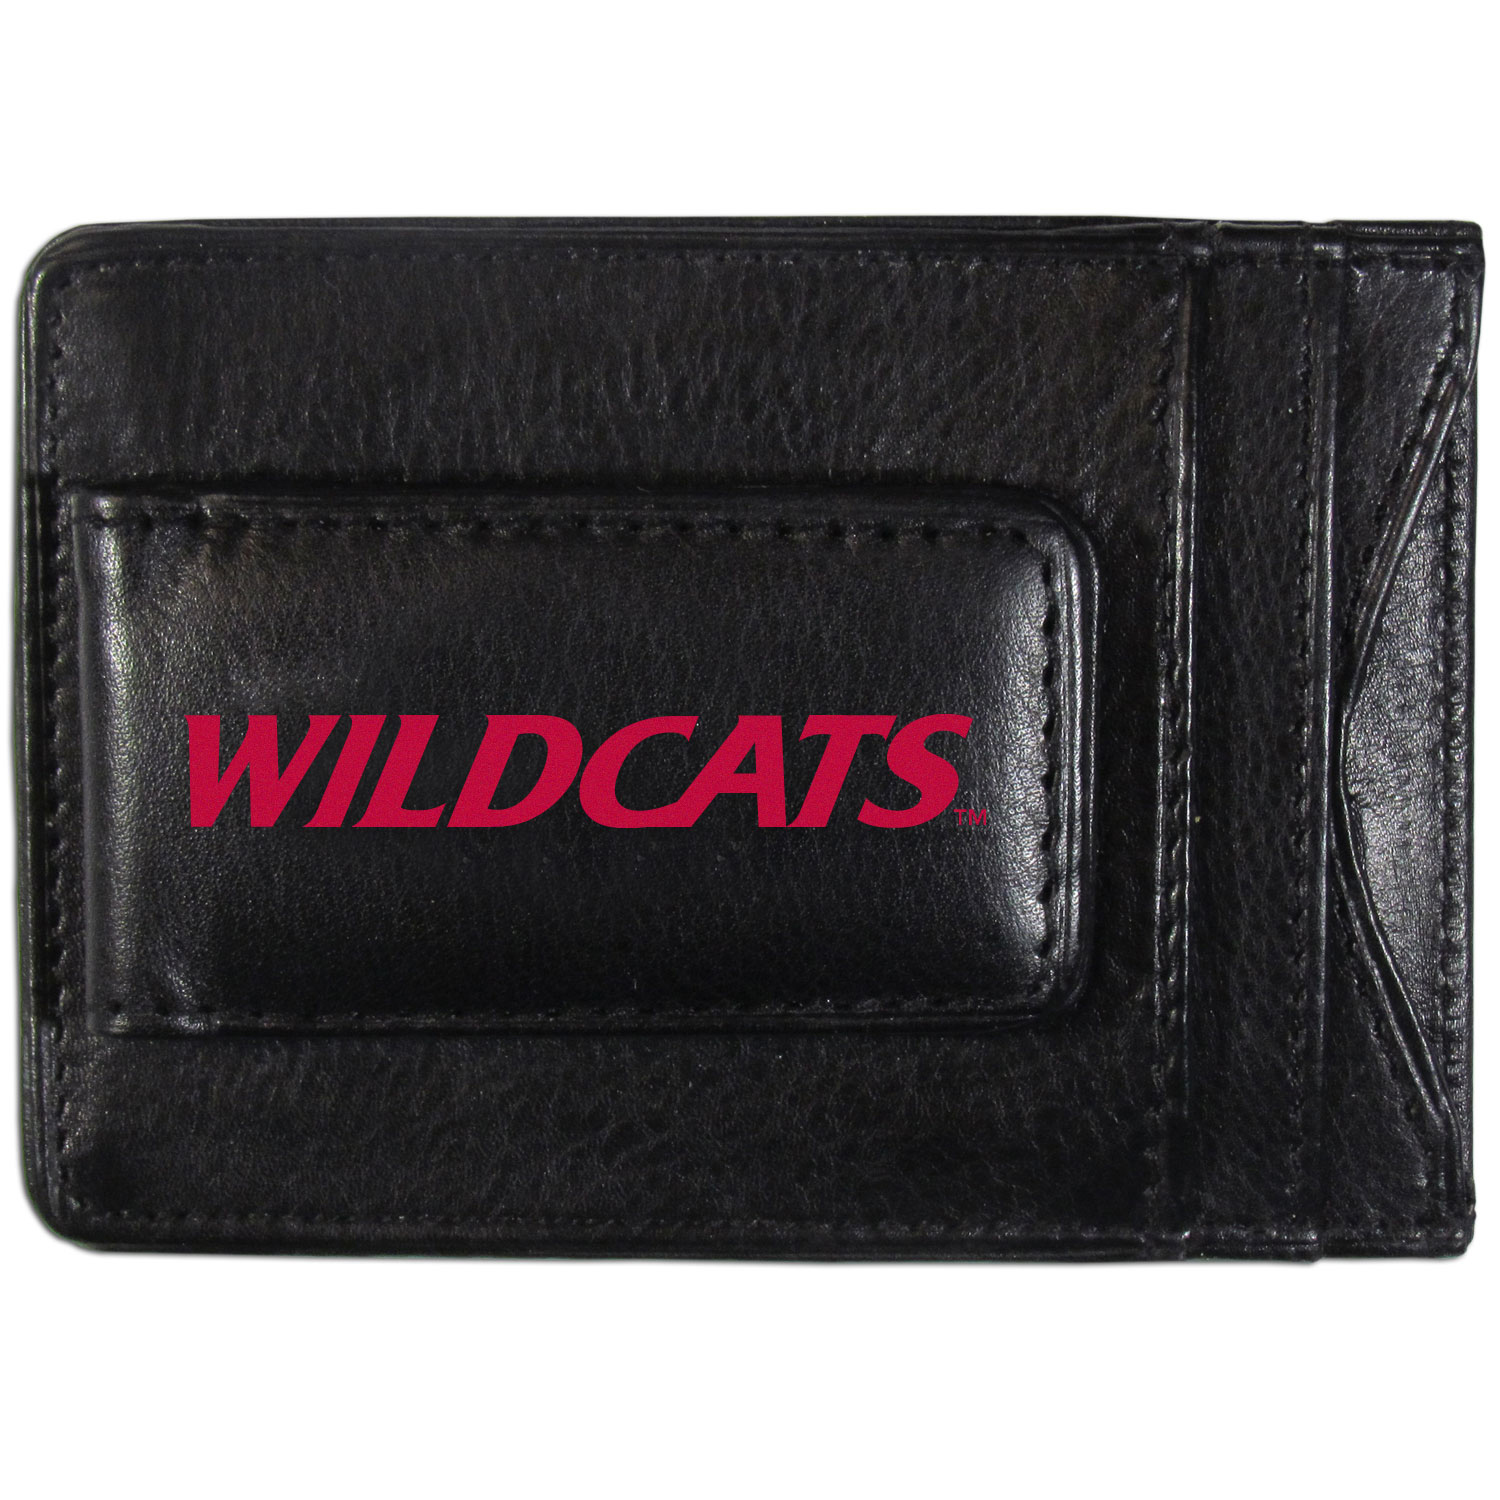 Arizona Wildcats Logo Leather Cash and Cardholder - This super slim leather wallet lets you have all the benefits of a money clip while keeping the organization of a wallet. On one side of this front pocket wallet there is a strong, magnetic money clip to keep your cash easily accessible and the?Arizona Wildcats team logo on the front. The versatile men's accessory is a perfect addition to your fan apparel.